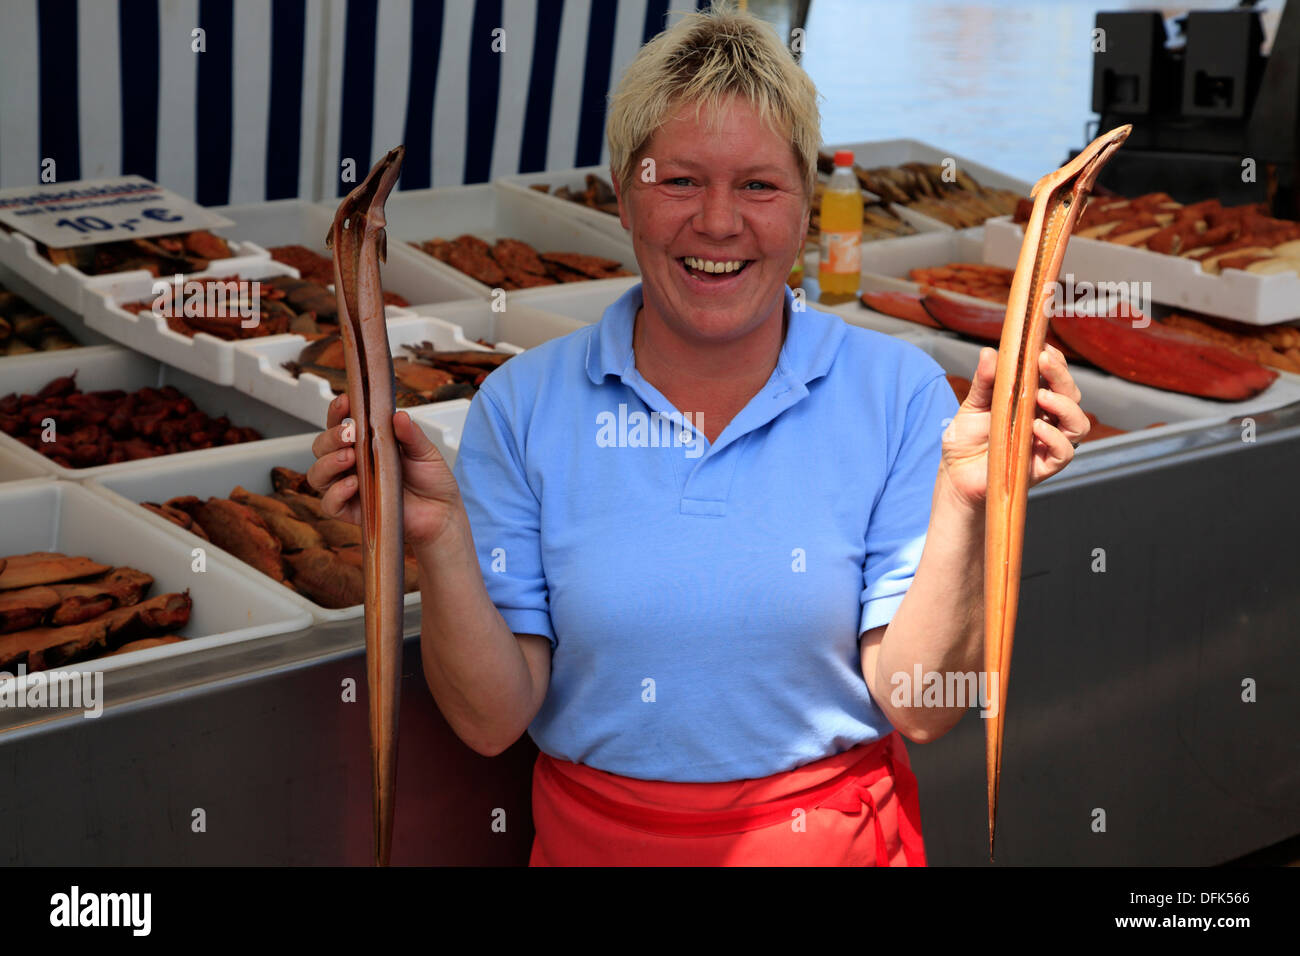 Selling smoked fish from the trawler, Wismar harbour, Baltic Sea, Mecklenburg-West Pomerania, Germany - Stock Image